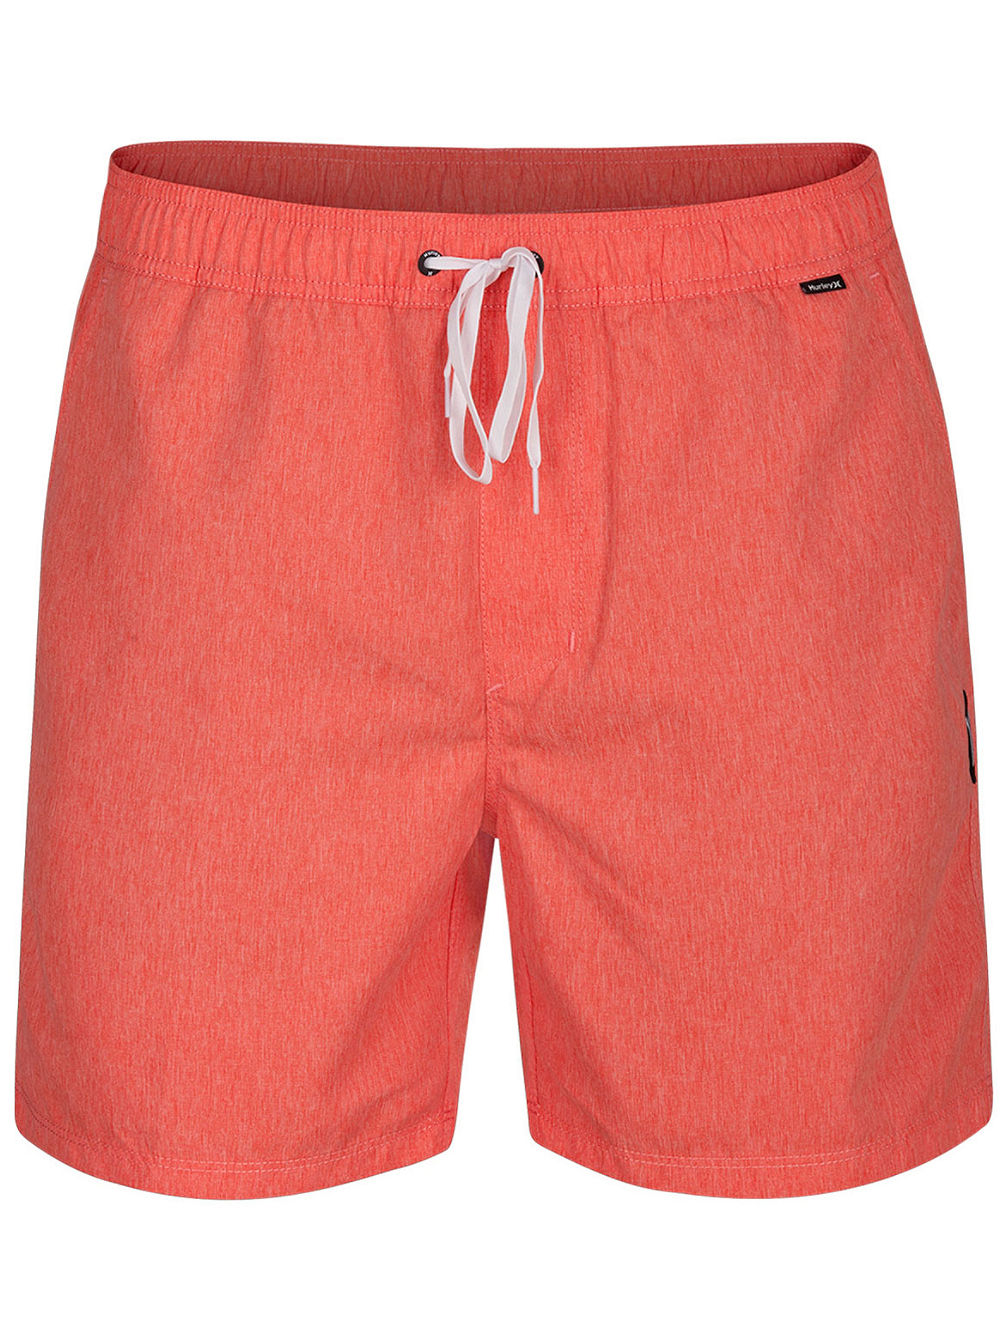 781d5e23de Buy Hurley Heather Volley 17'' Boardshorts online at blue-tomato.com